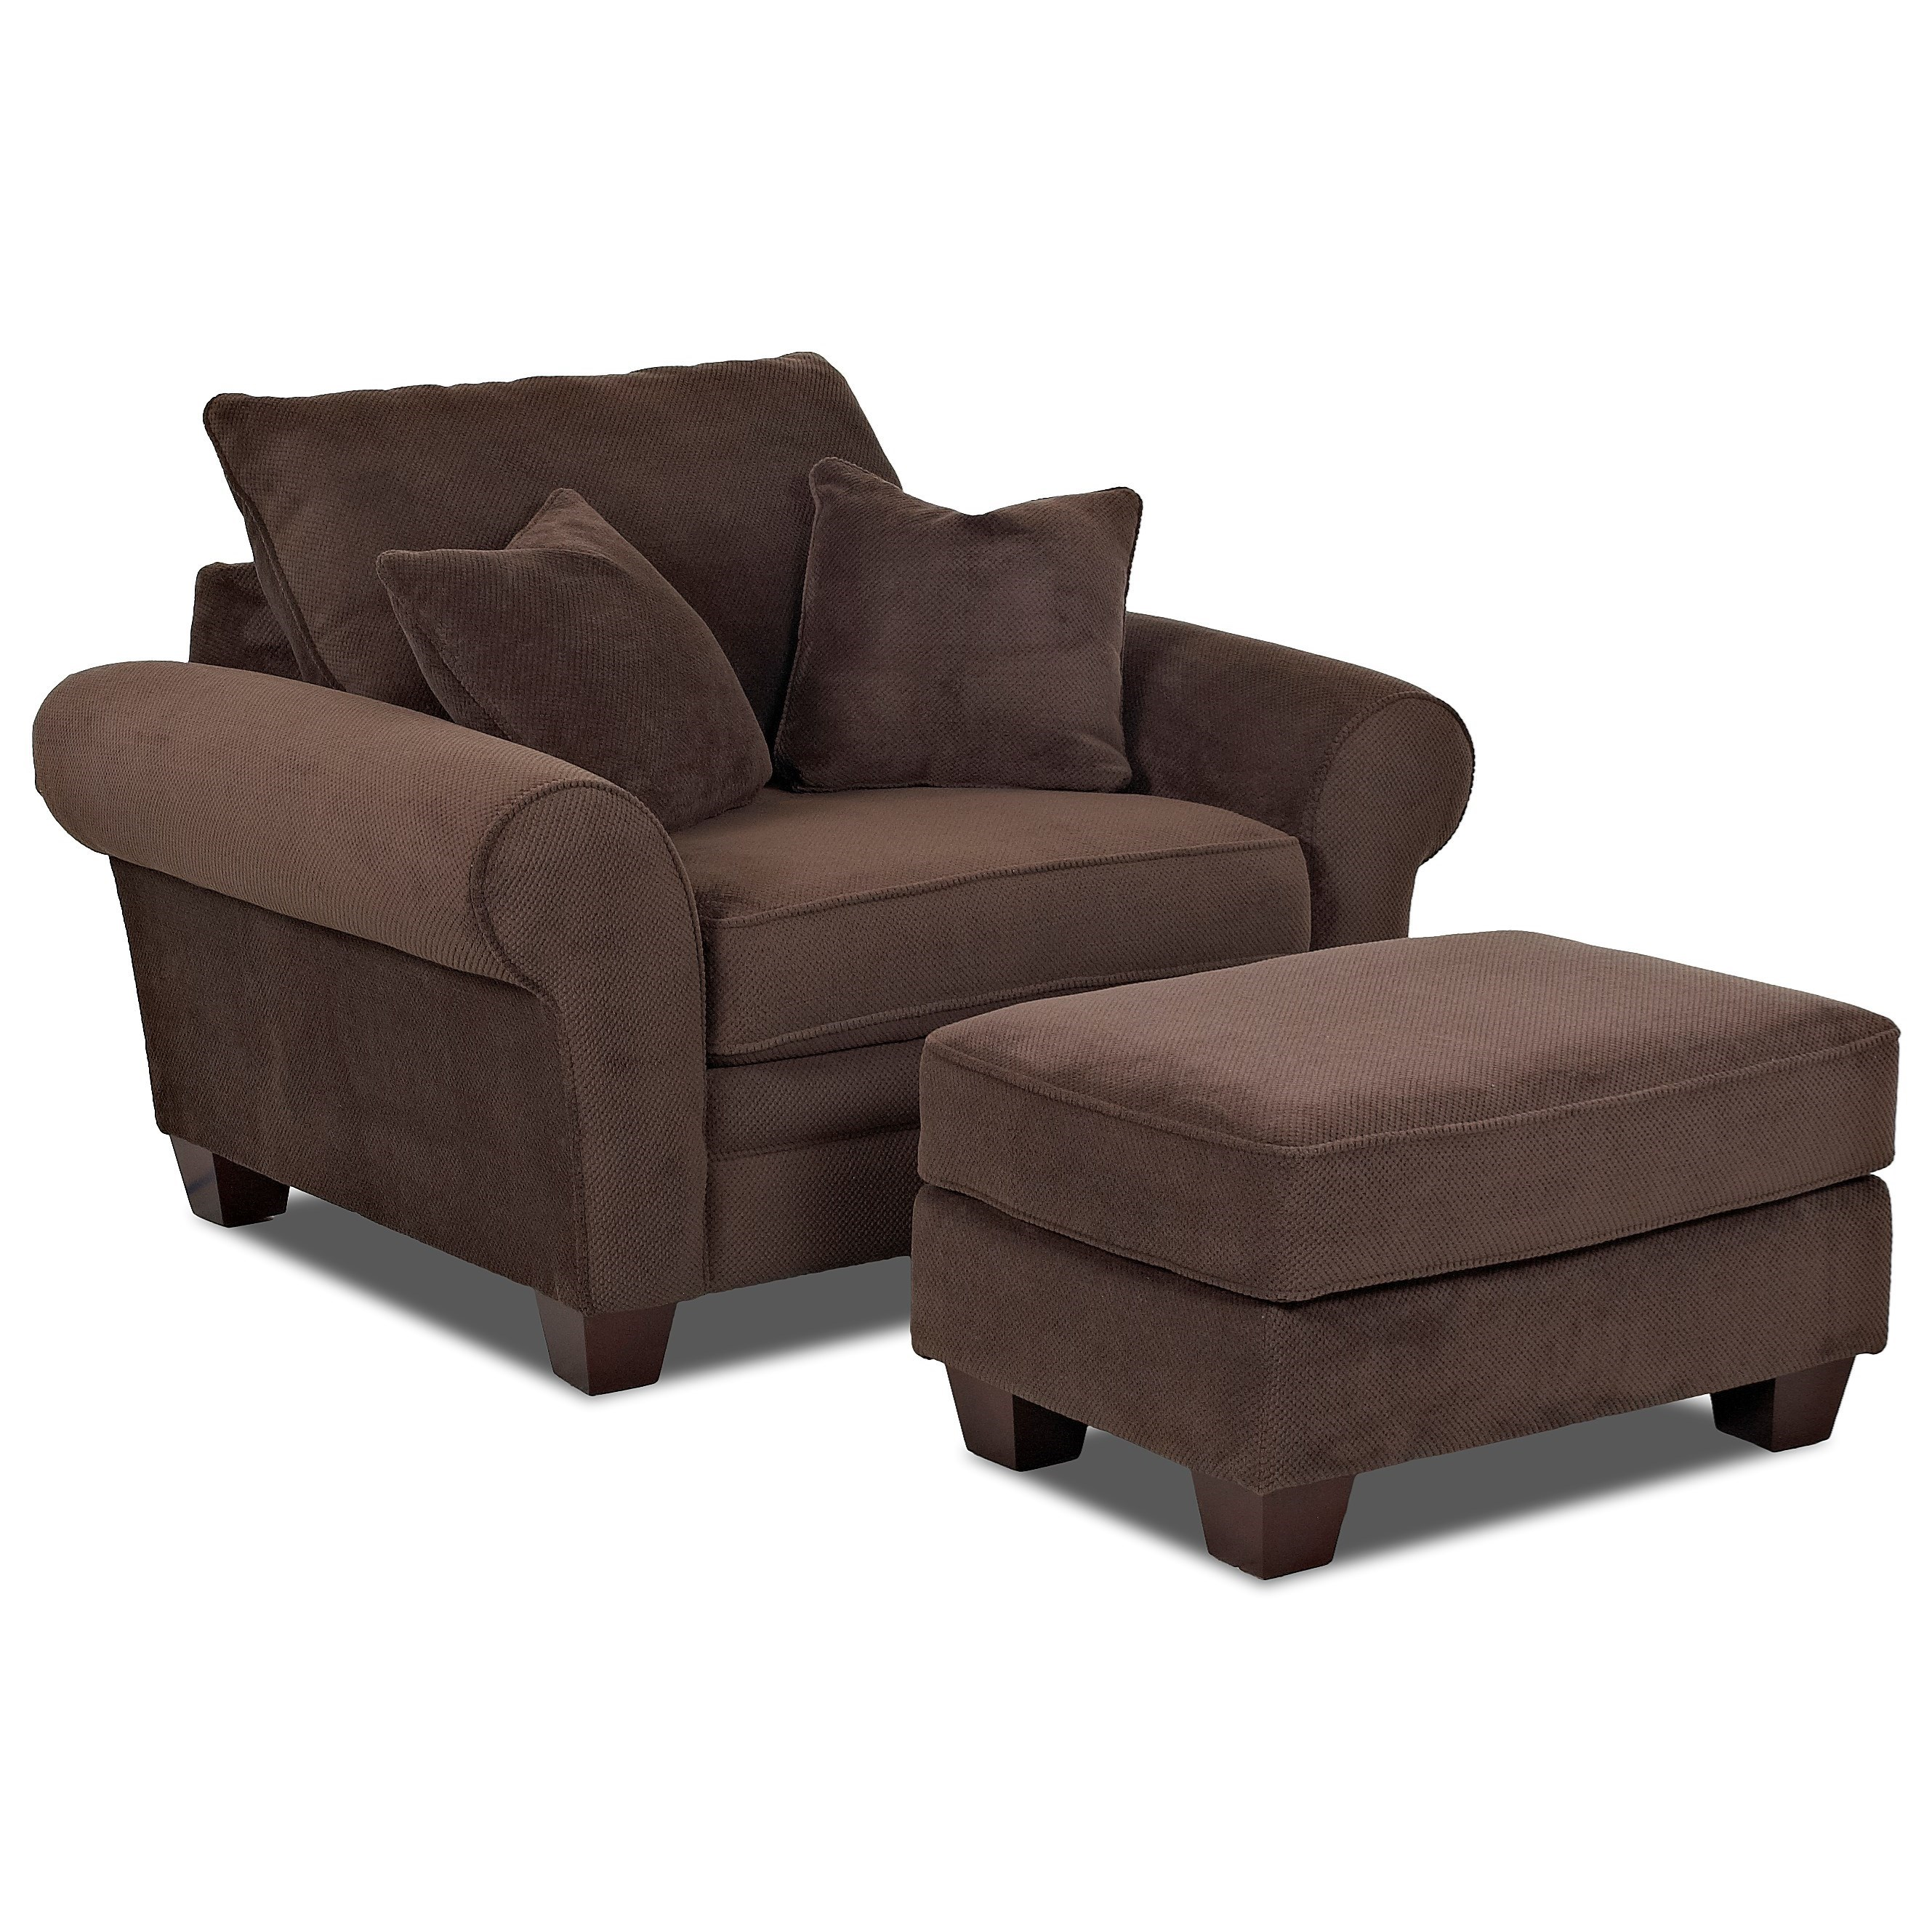 Klaussner kazler oversized chair and ottoman set olinde for Chair ottoman